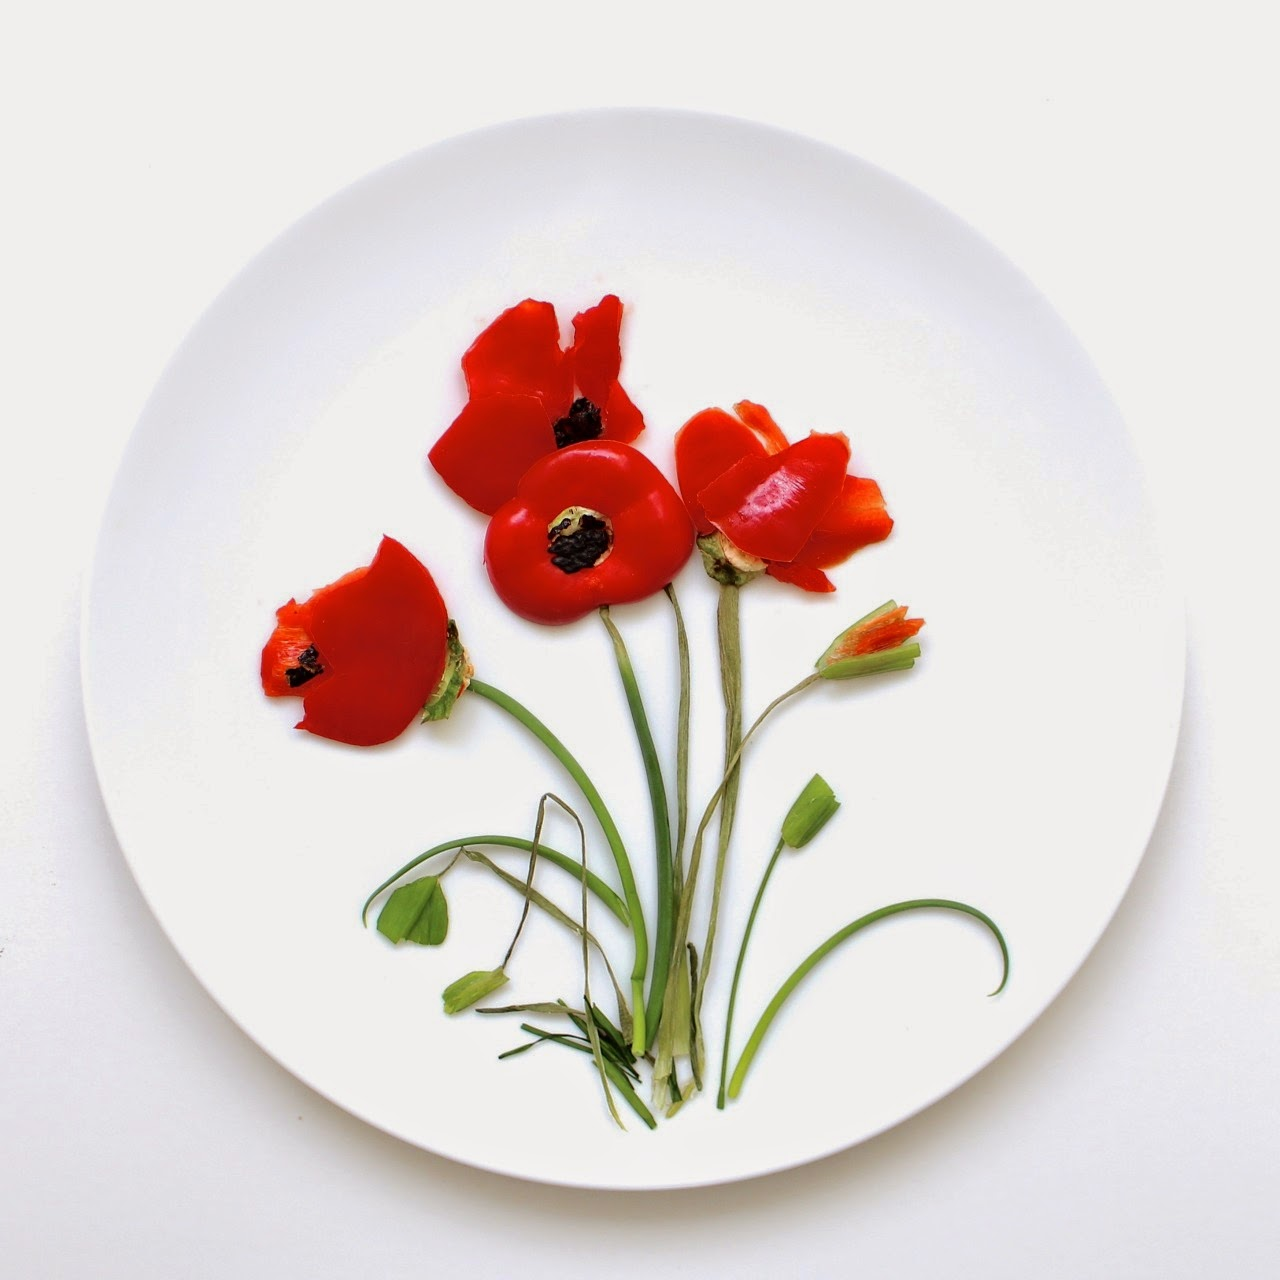 08-Poppies-Lauren-Purnell-Love-Art-and Love-for-Food-www-designstack-co